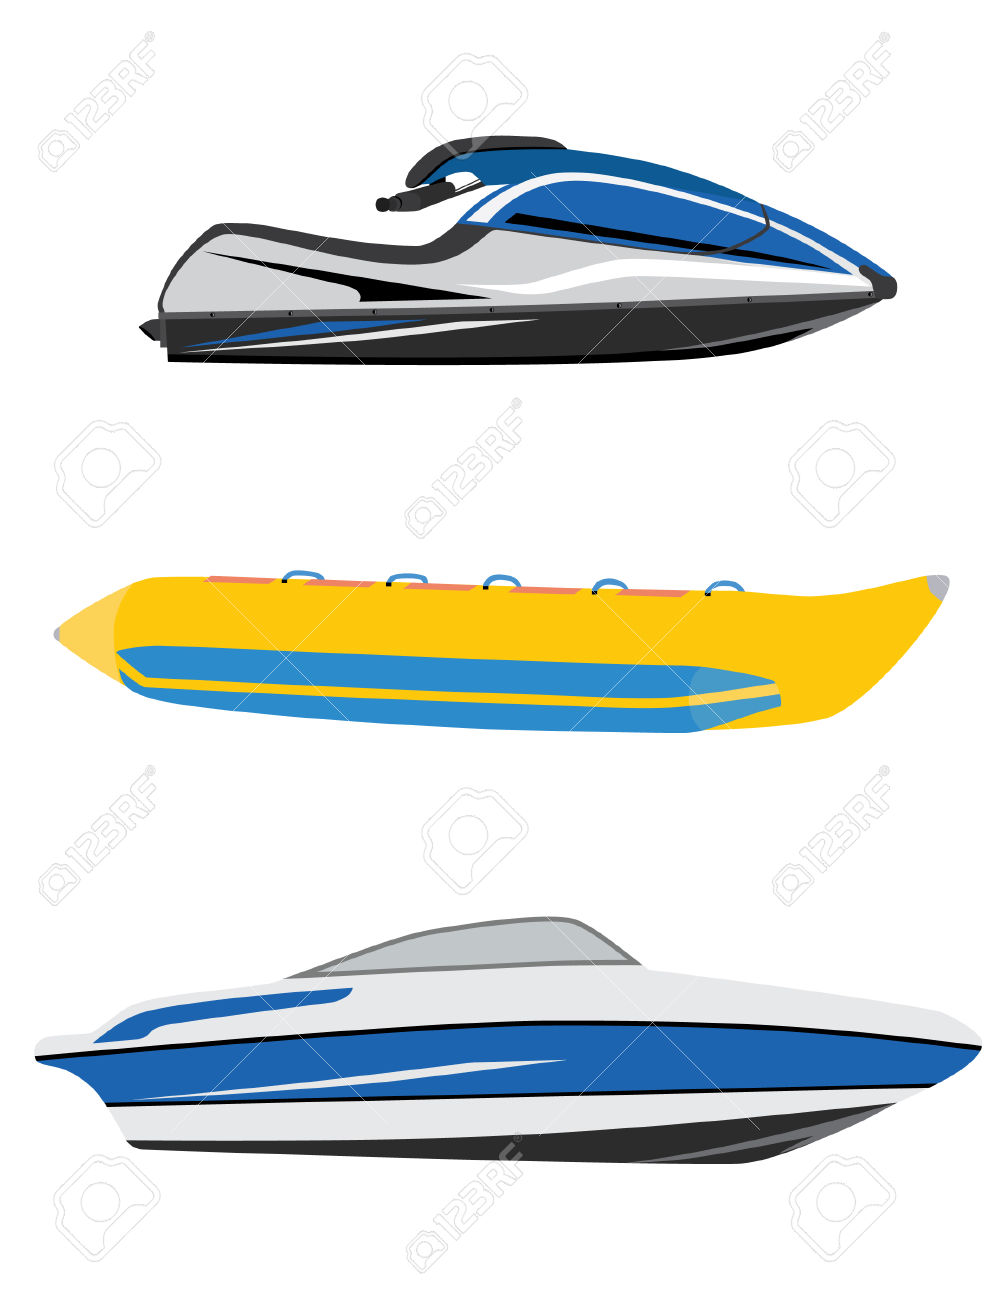 Water Transport Banana Boat, Luxury Boat And Water Scooter, Jet.